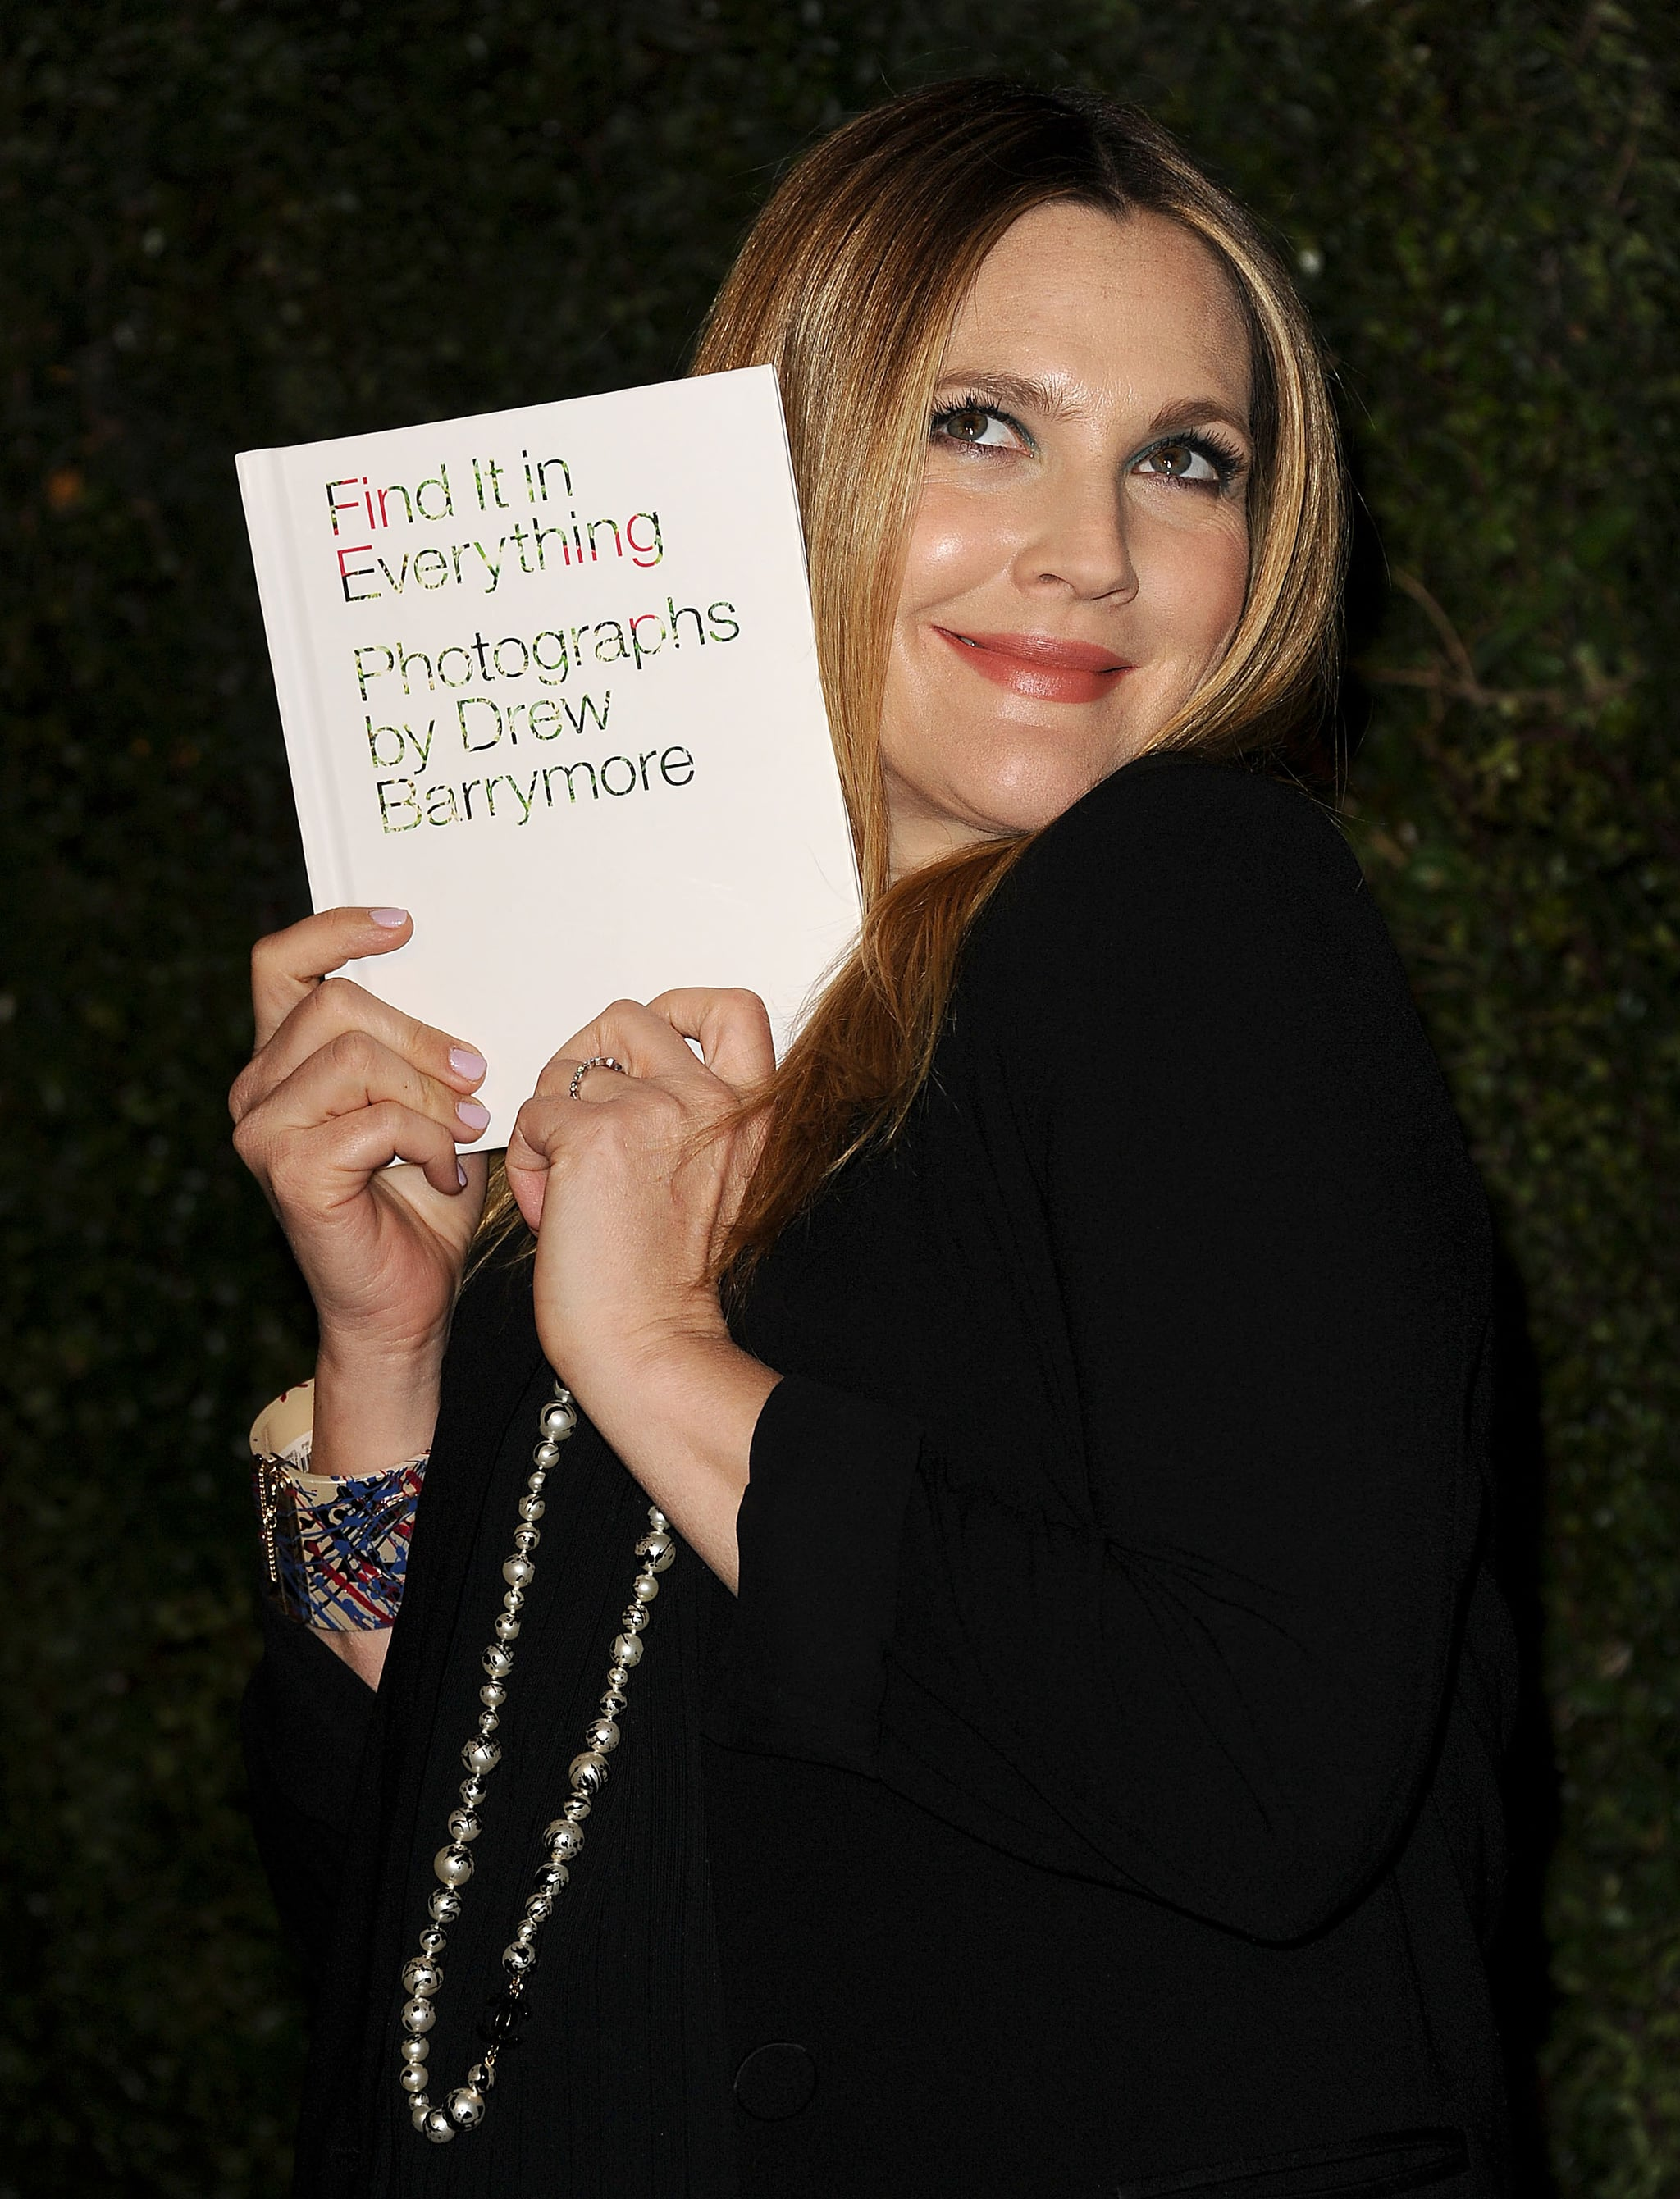 Drew knew how to show off her new book.